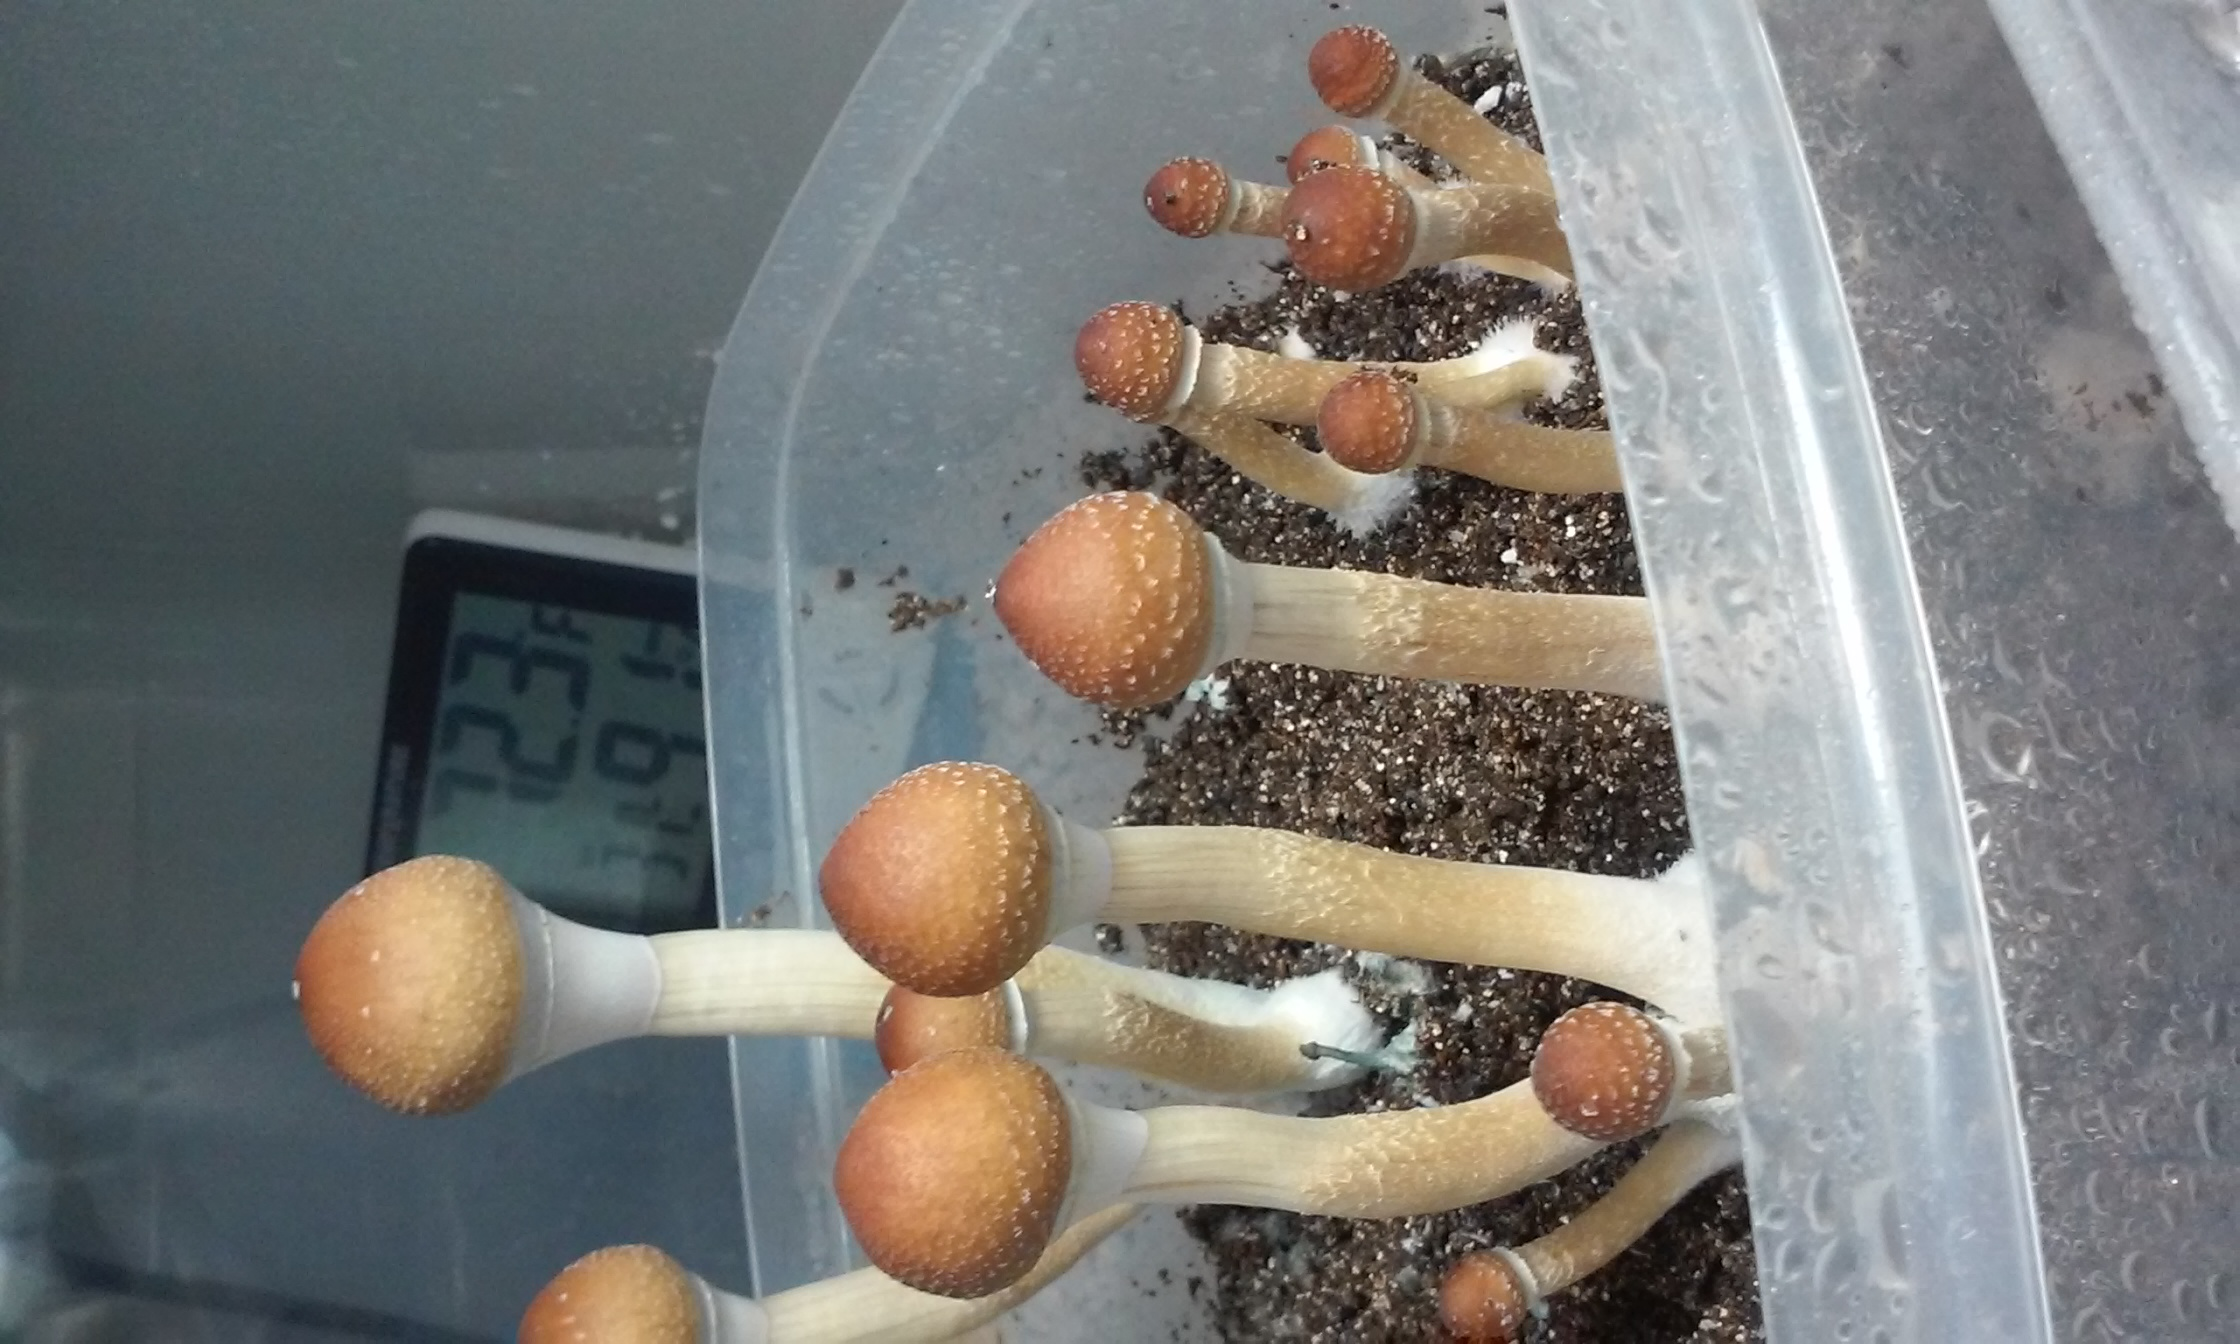 Beautiful second flush!